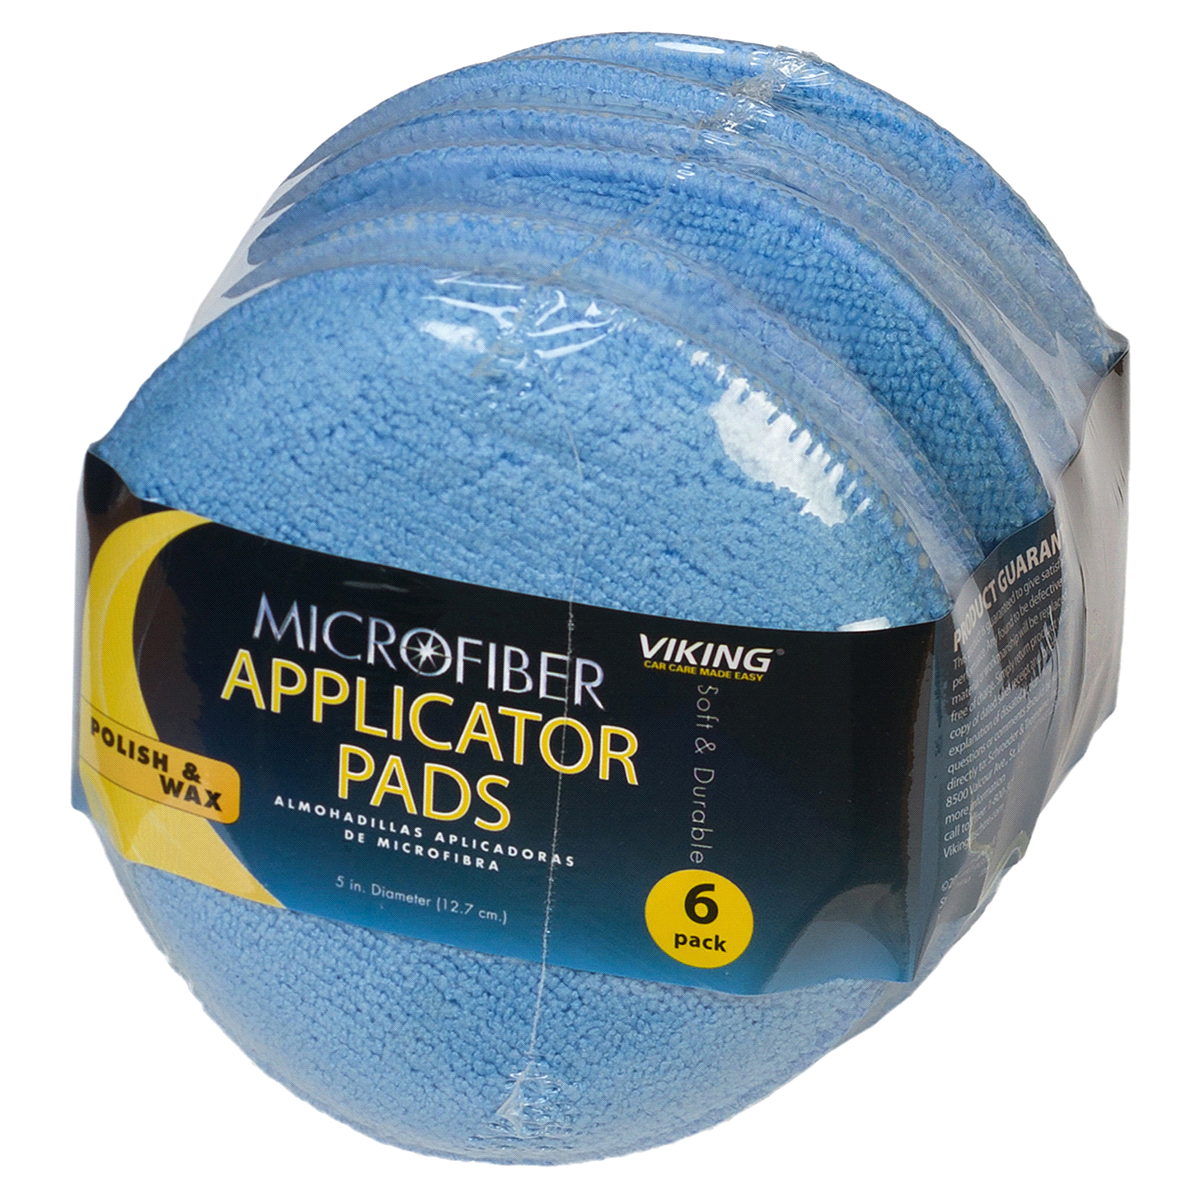 slide 3 of 4, Viking Microfiber Applicator Pads,